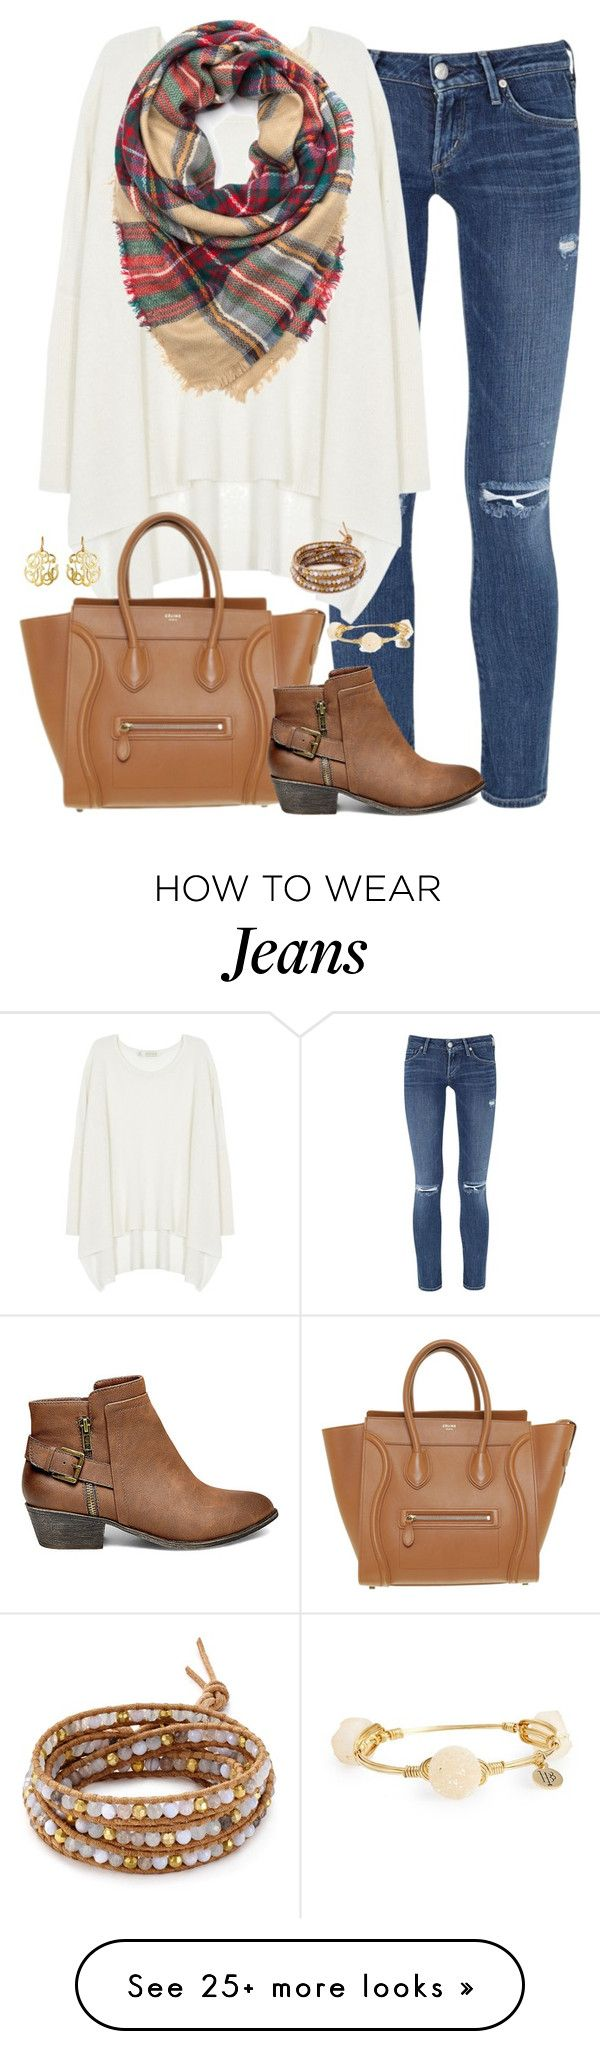 """♡ every day is a fresh start ♡"" by kaley-ii on Polyvore featuring Citizens of Humanity, Century Seven, CÉLINE, Steve Madden, Bourbon and Boweties, Chan Luu and Susan Shaw"